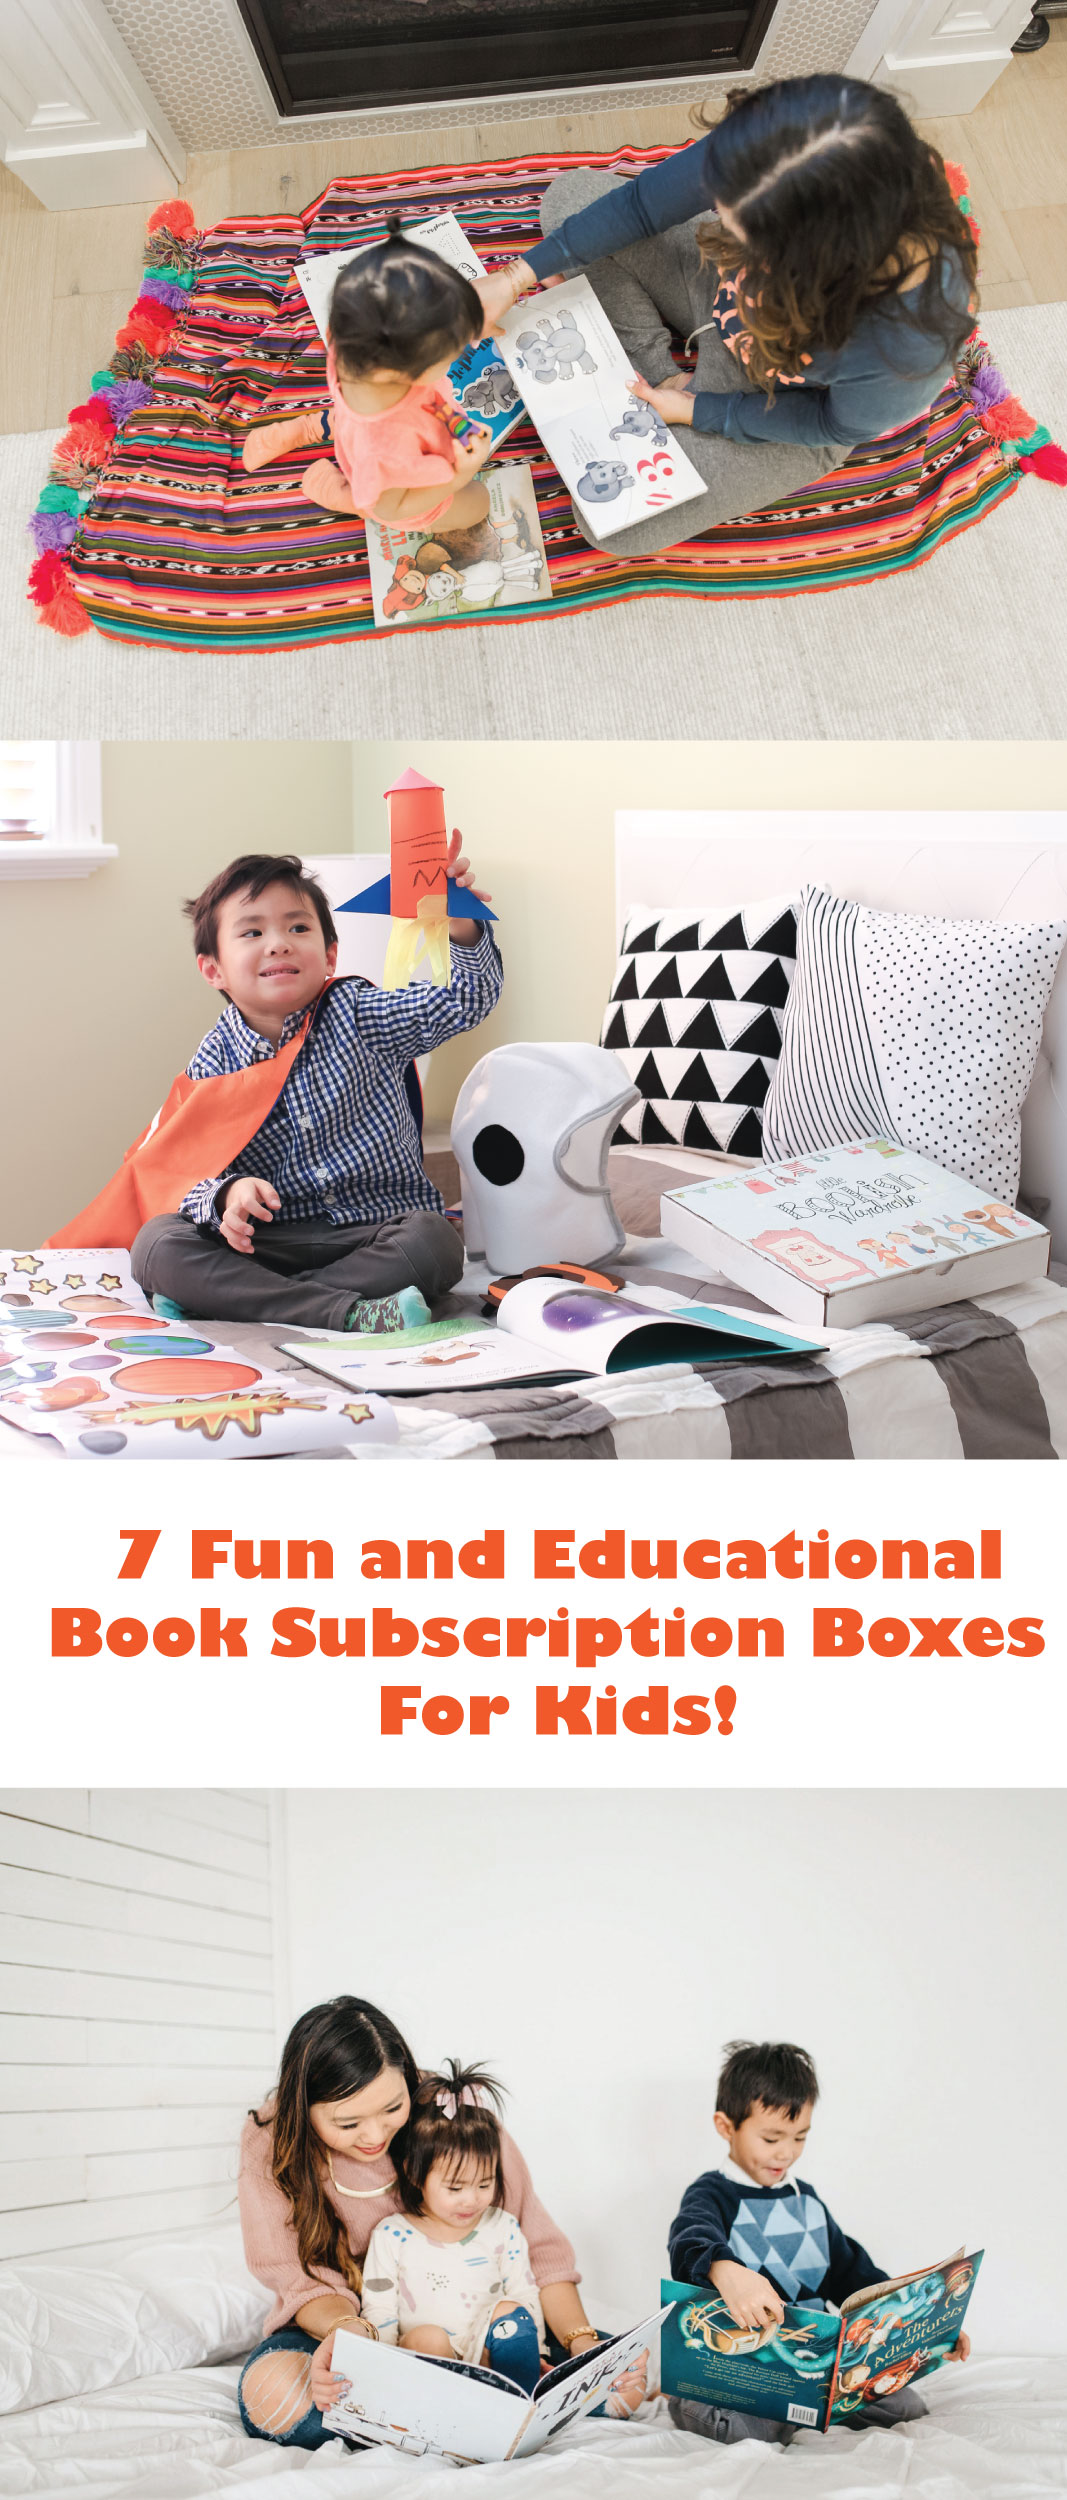 7 Fun and Educational Book Subscription Box for Kids